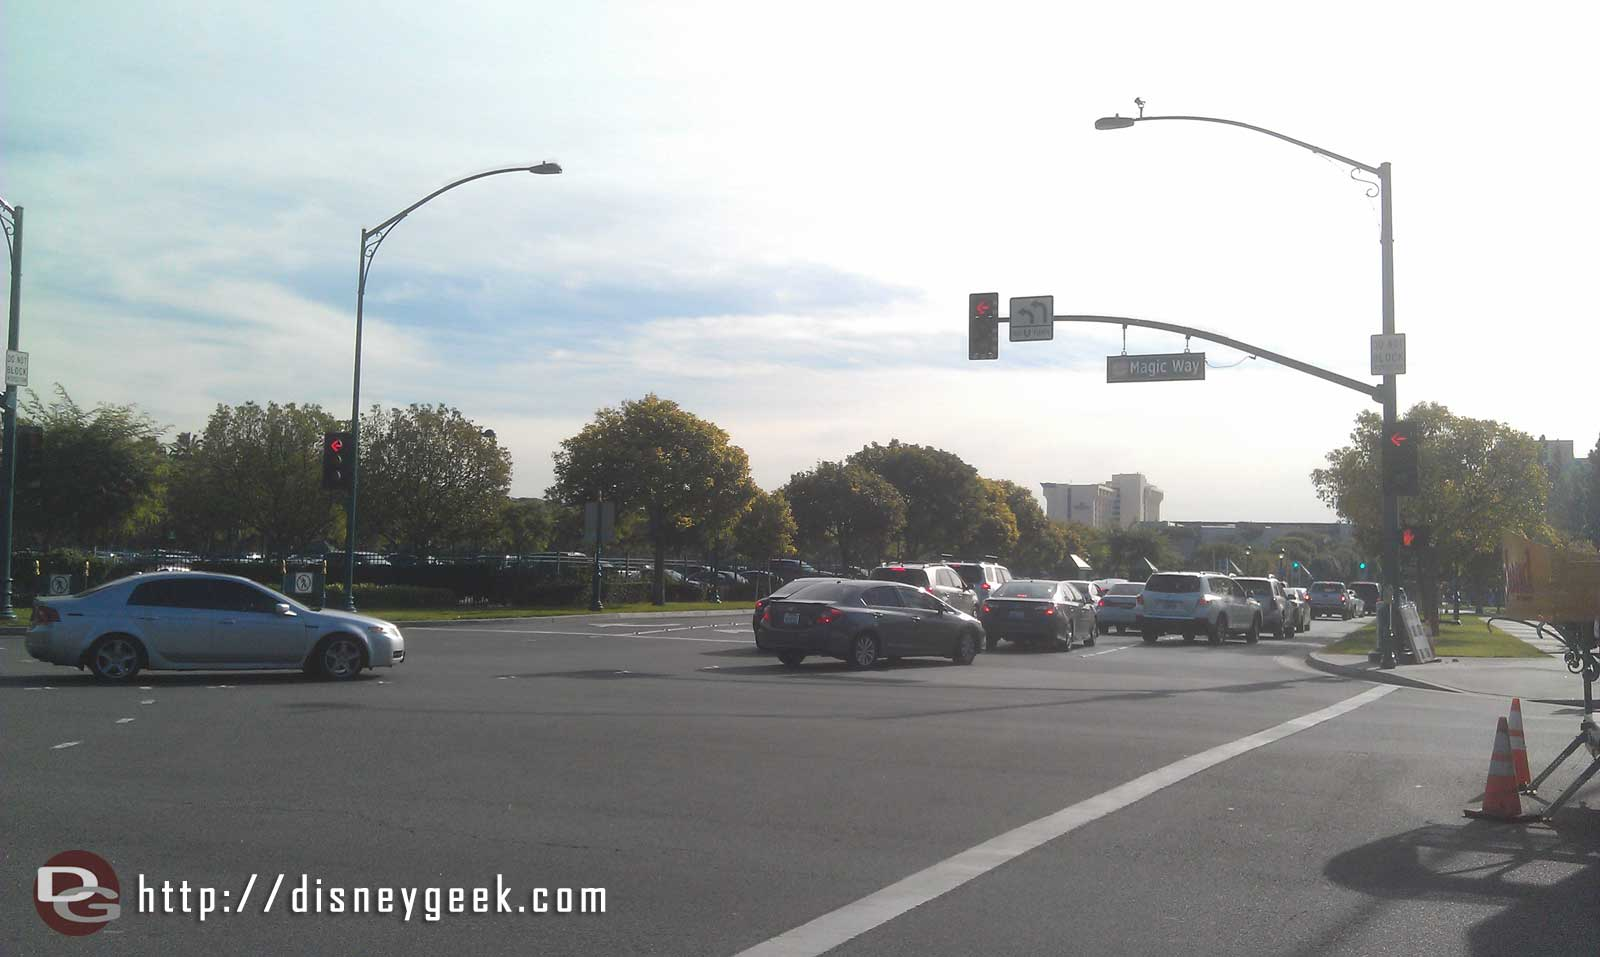 Downtown Disney is backed up to Magic Way too with cars stretching to Disneyland Drive